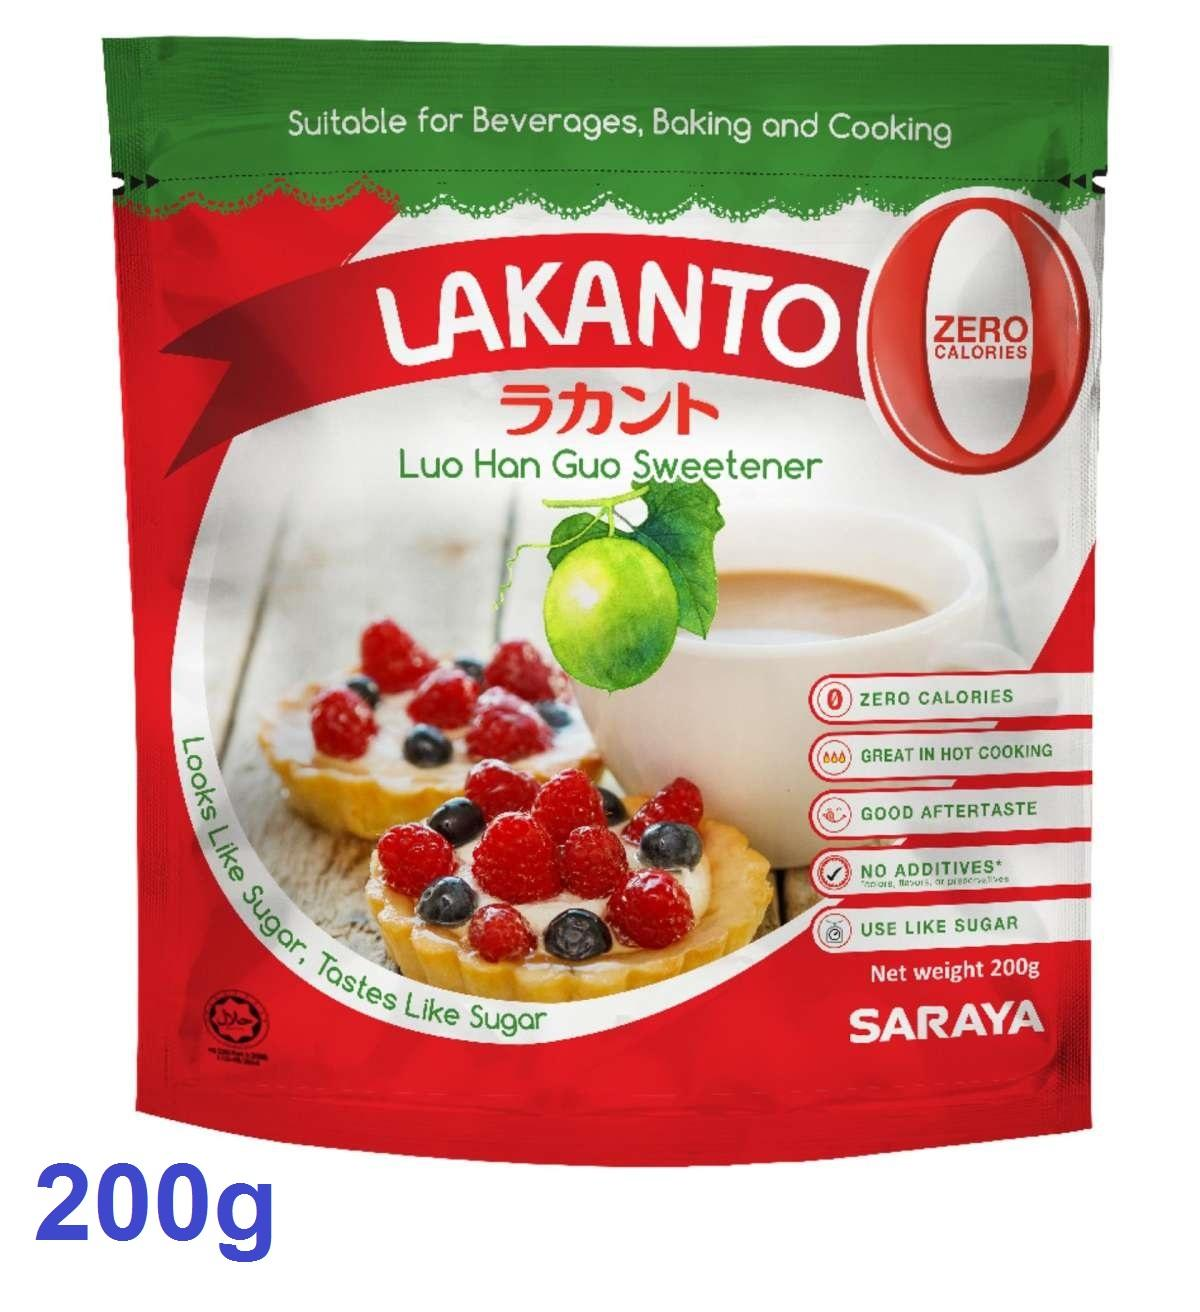 Lakanto 200g Monk Fruit Erythritol Sweetener Keto Diet 0% Sugar Low Carb Low Calories By Jenstore.